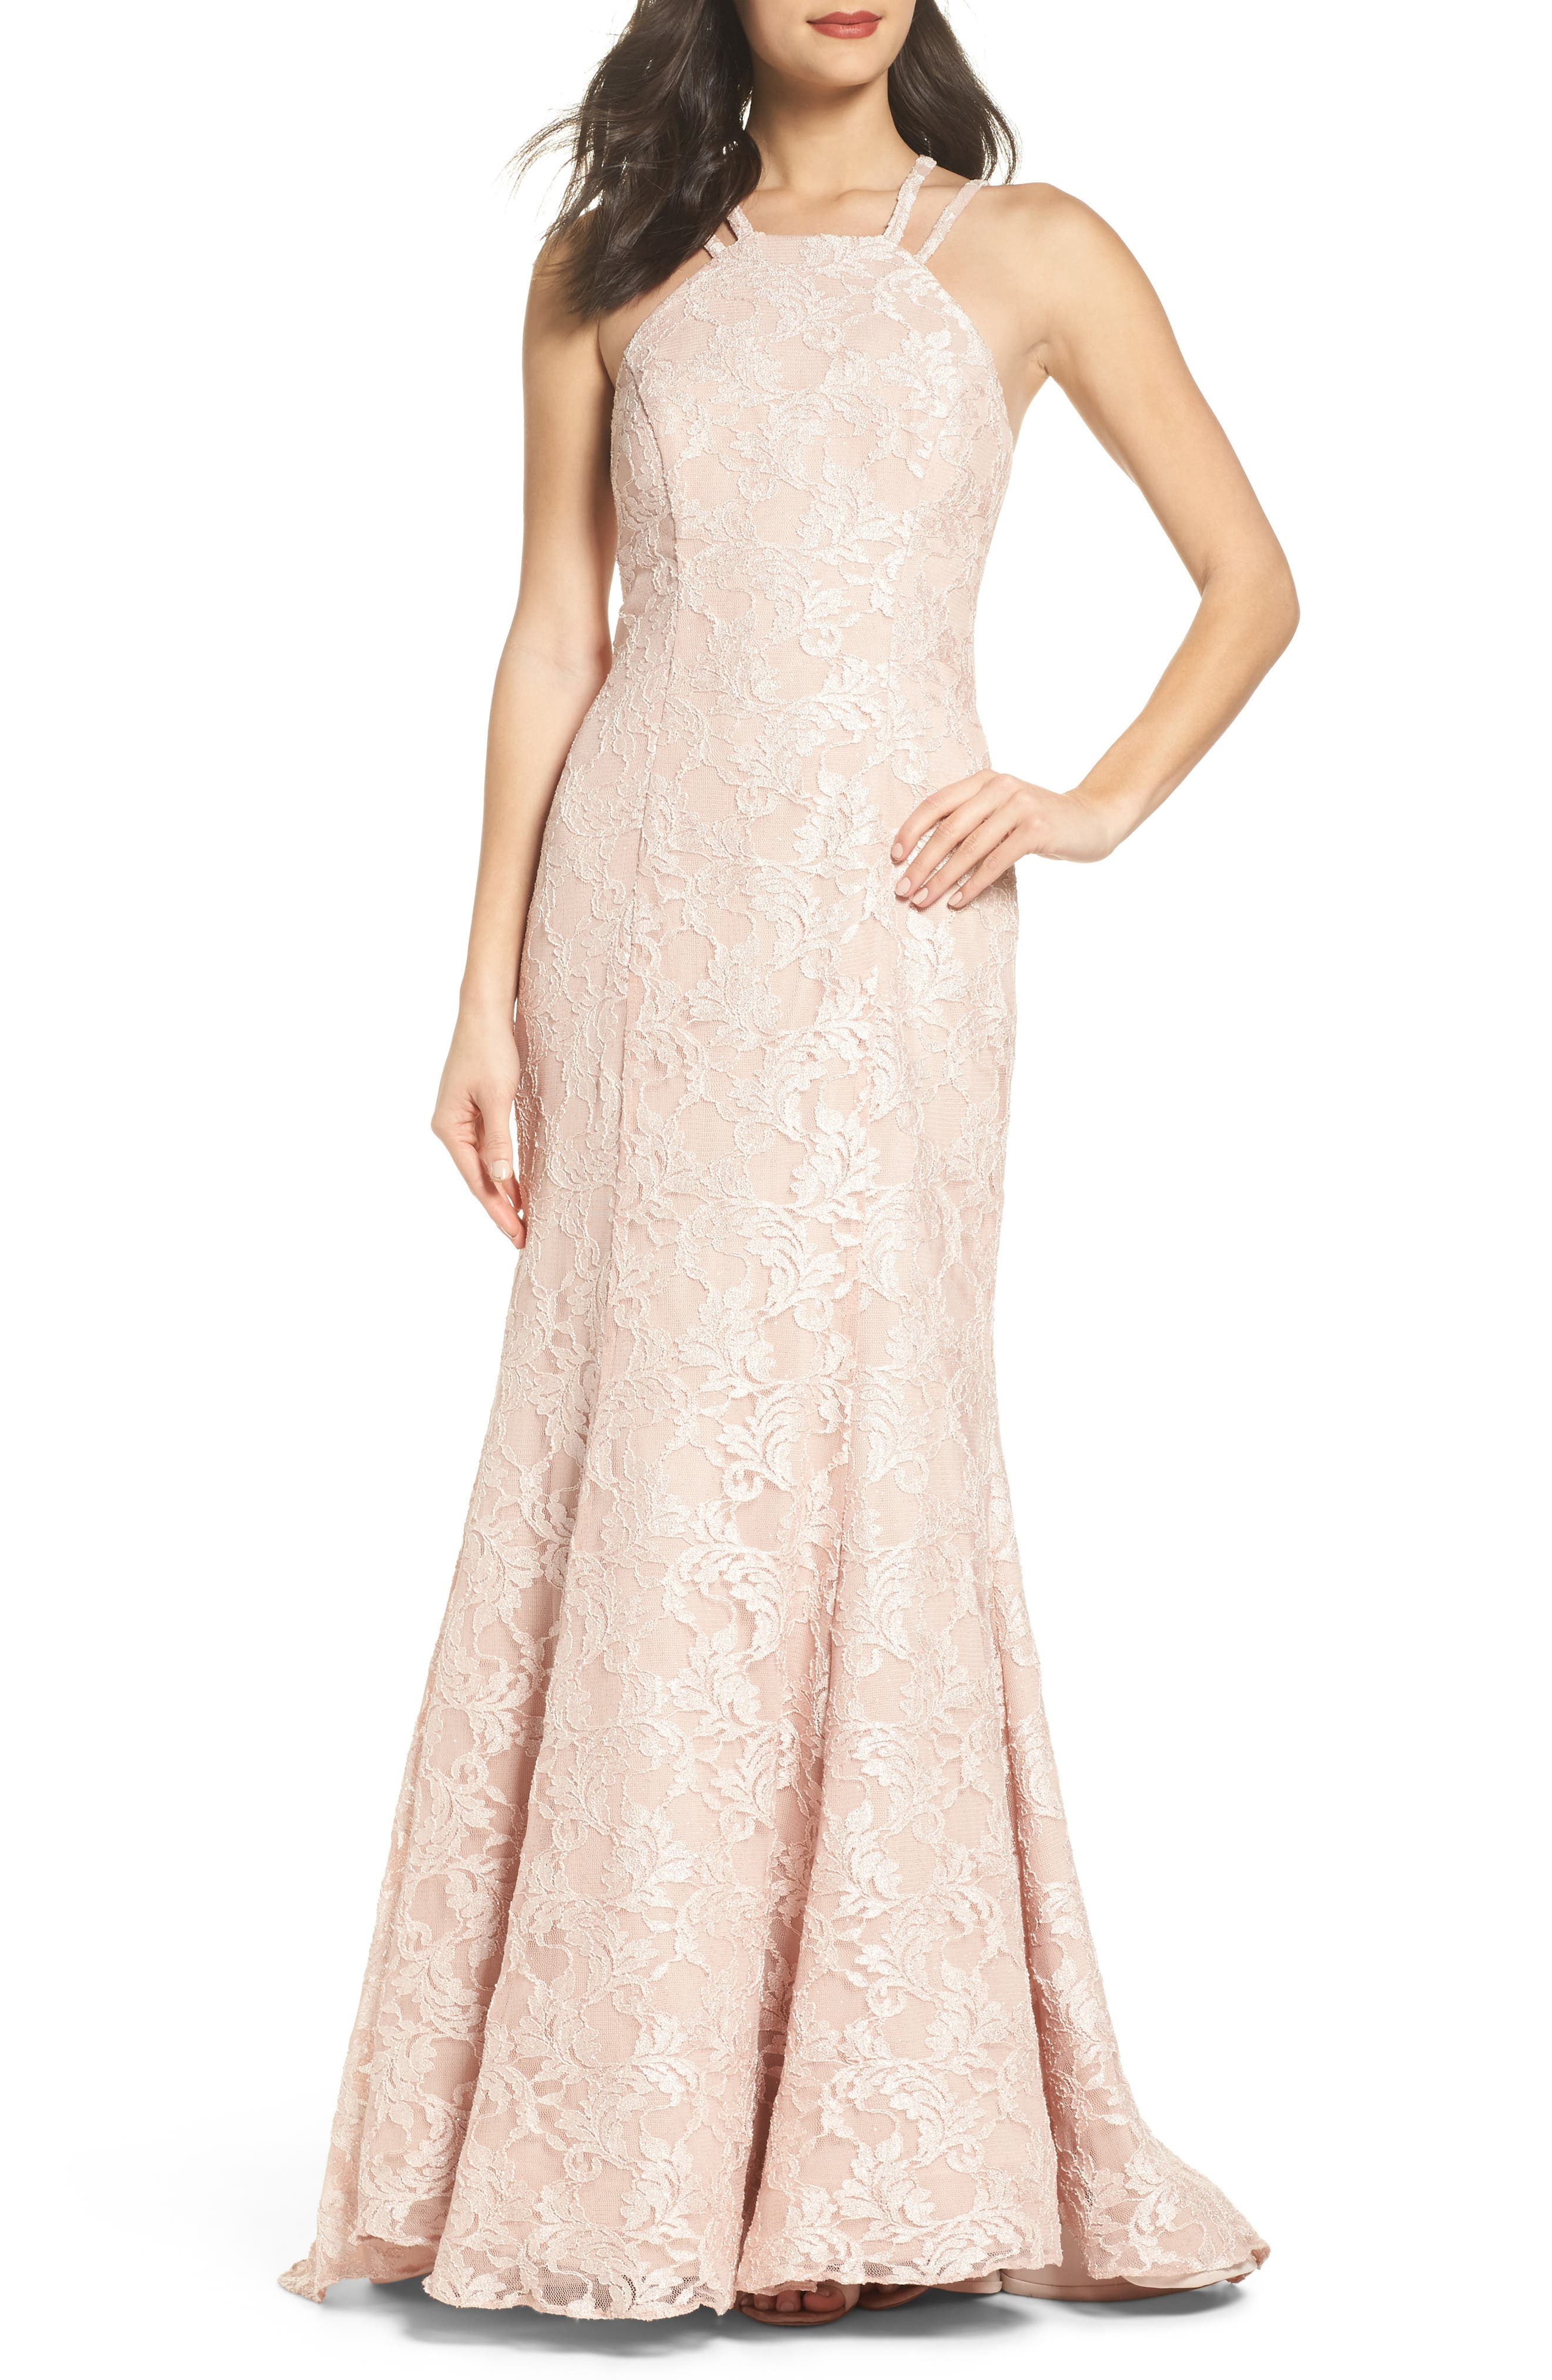 Strappy Lace Mermaid Gown,                             Main thumbnail 1, color,                             Blush / Nude